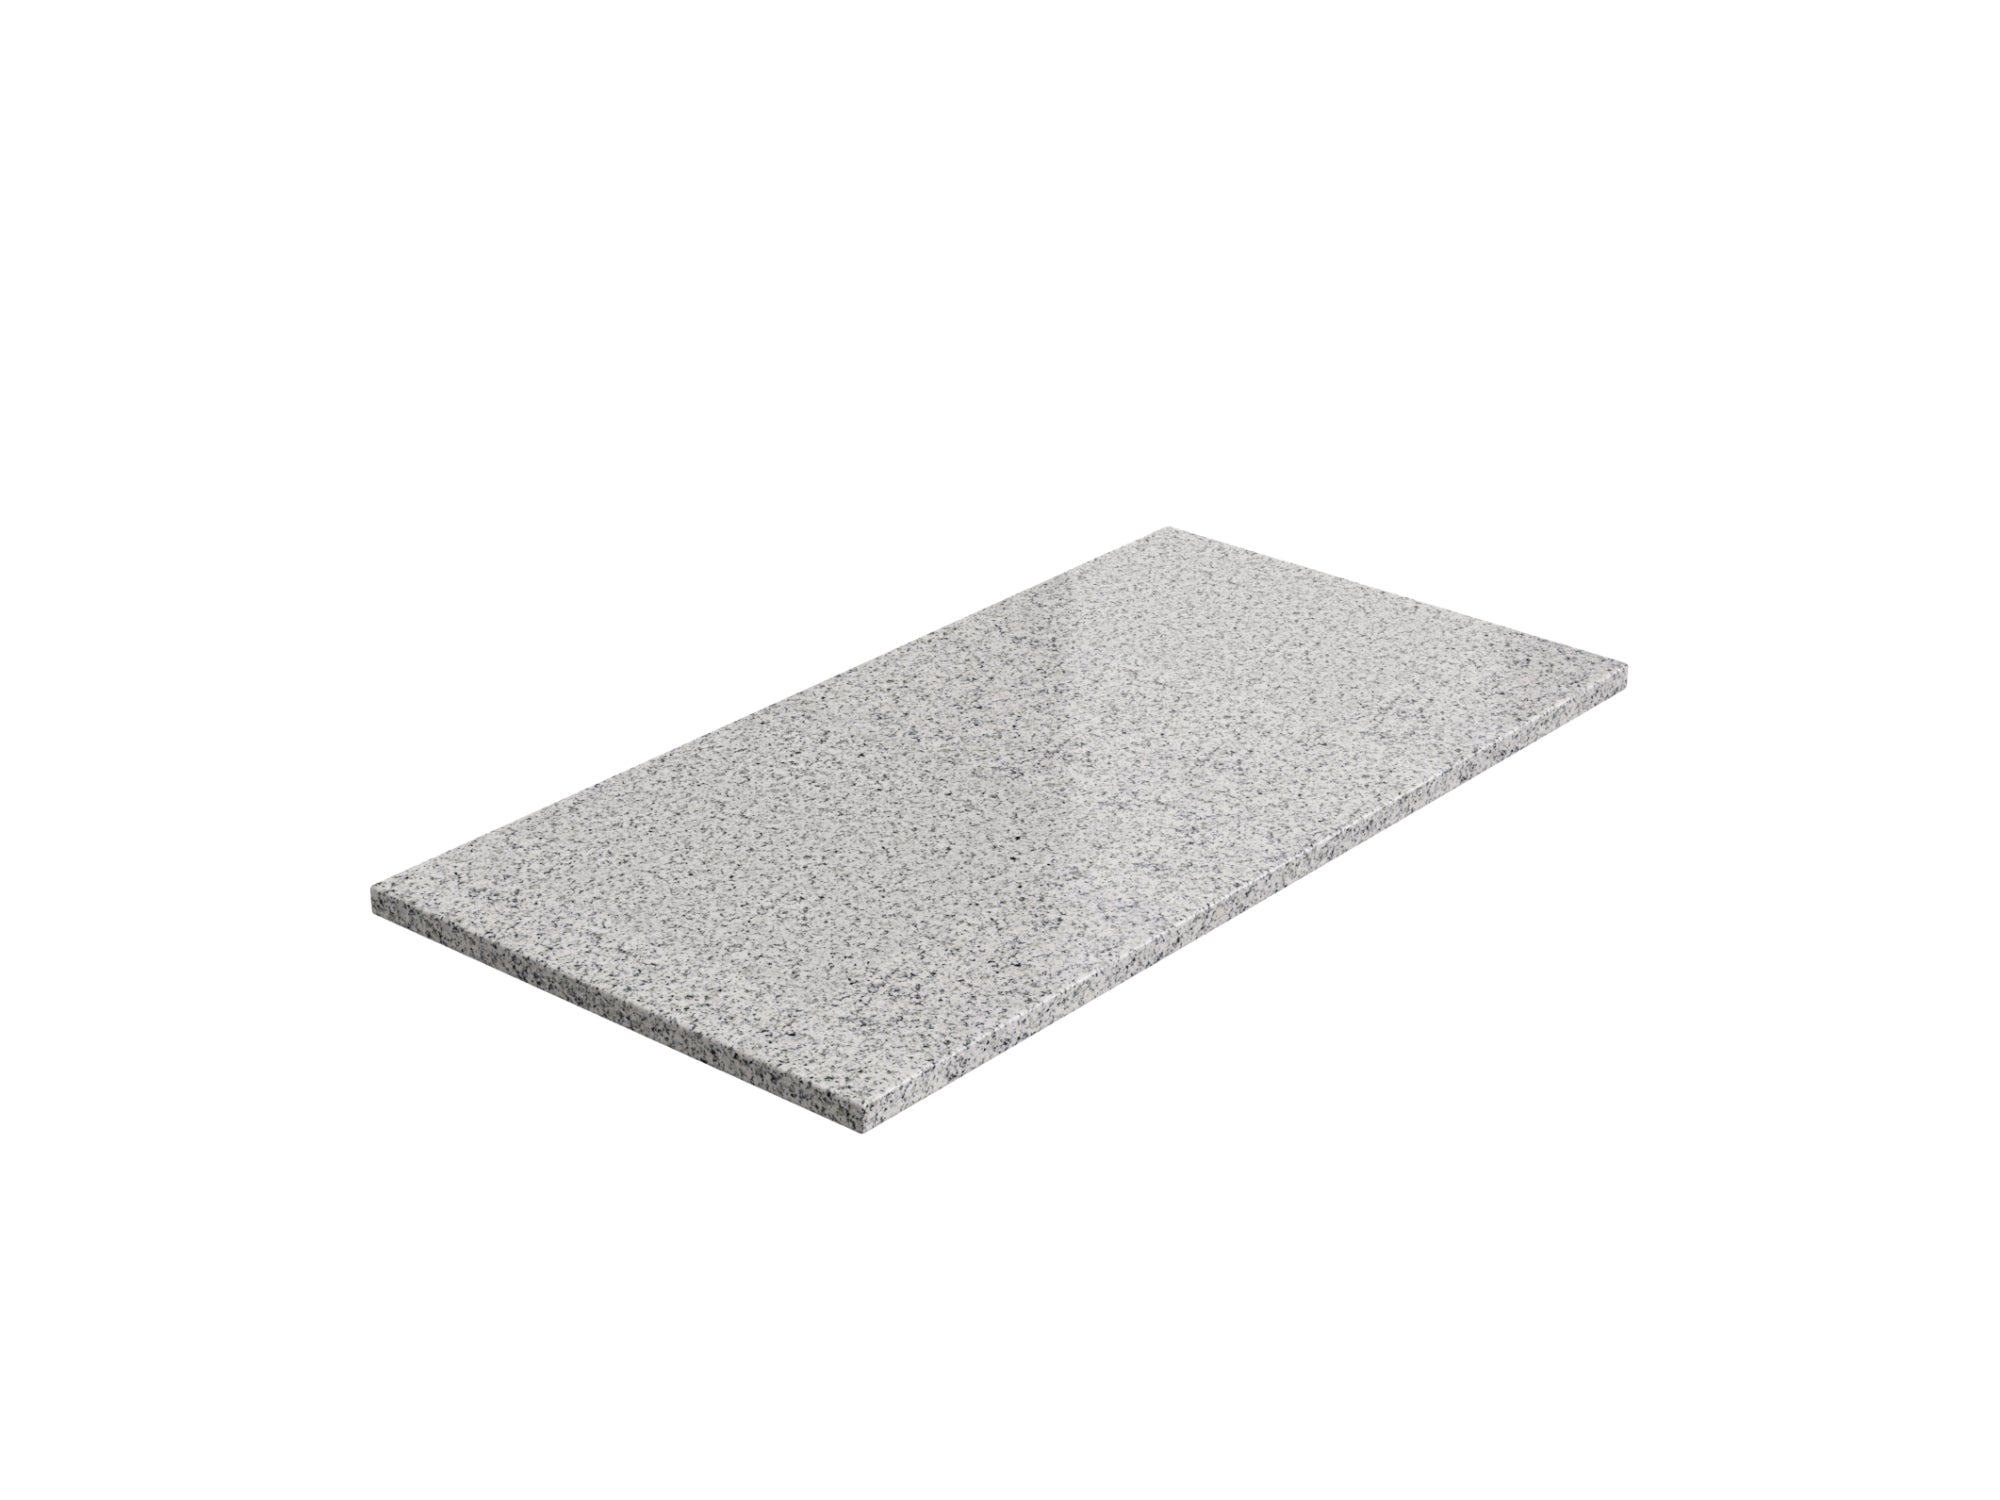 Kitchen Granite Countertop (1 x 48 in. Extended, 1 x 24 in. Extended)